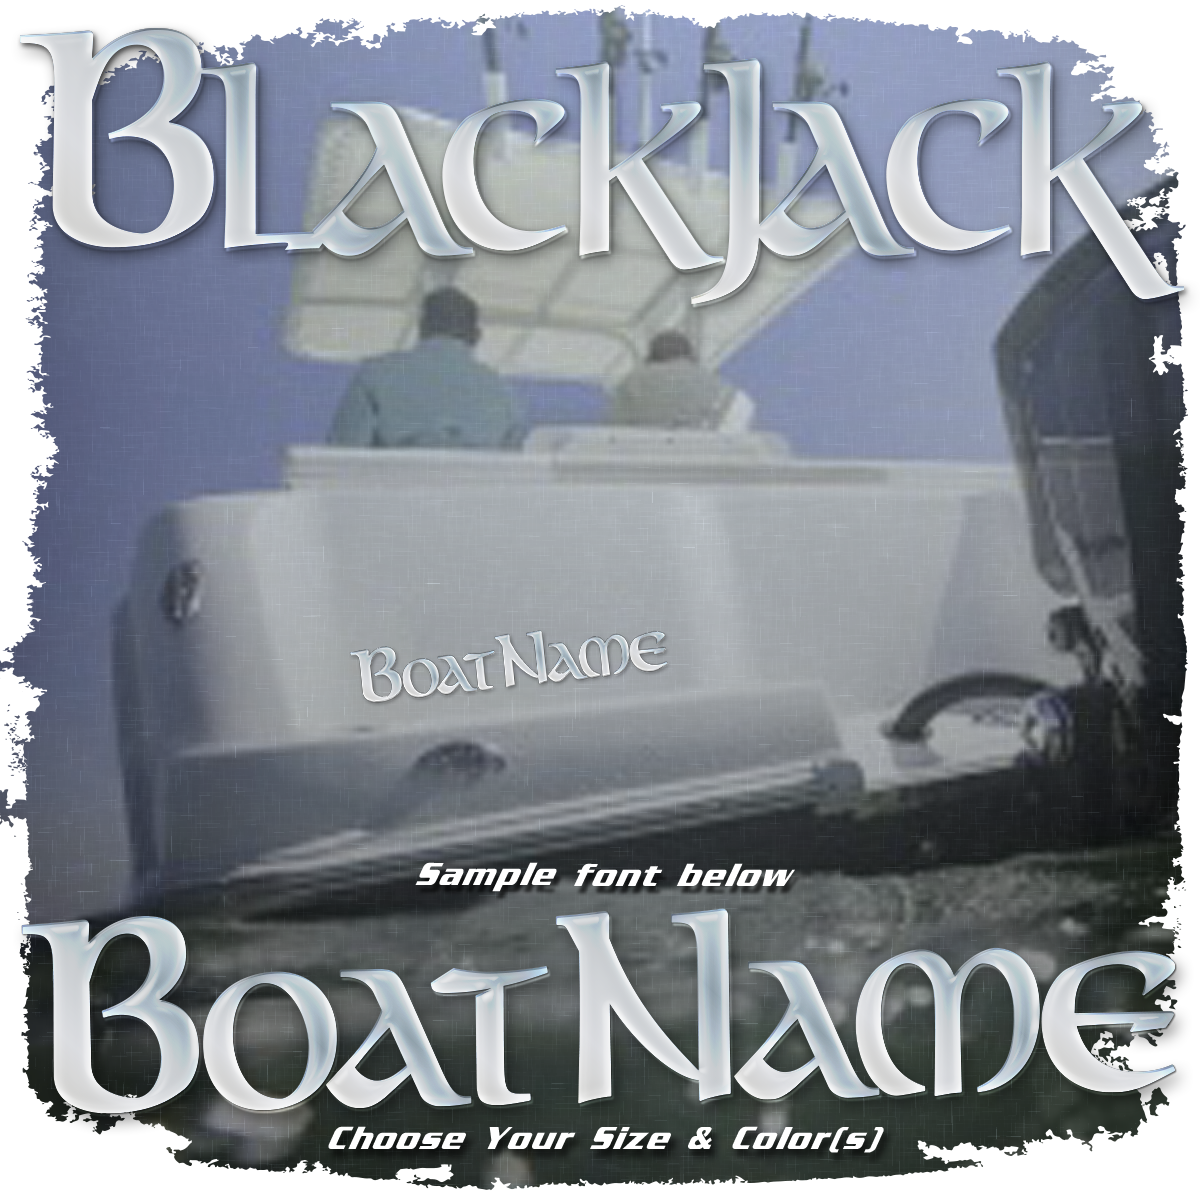 Domed Boat Name in the BlackJack Font, Choose Your Own Colors